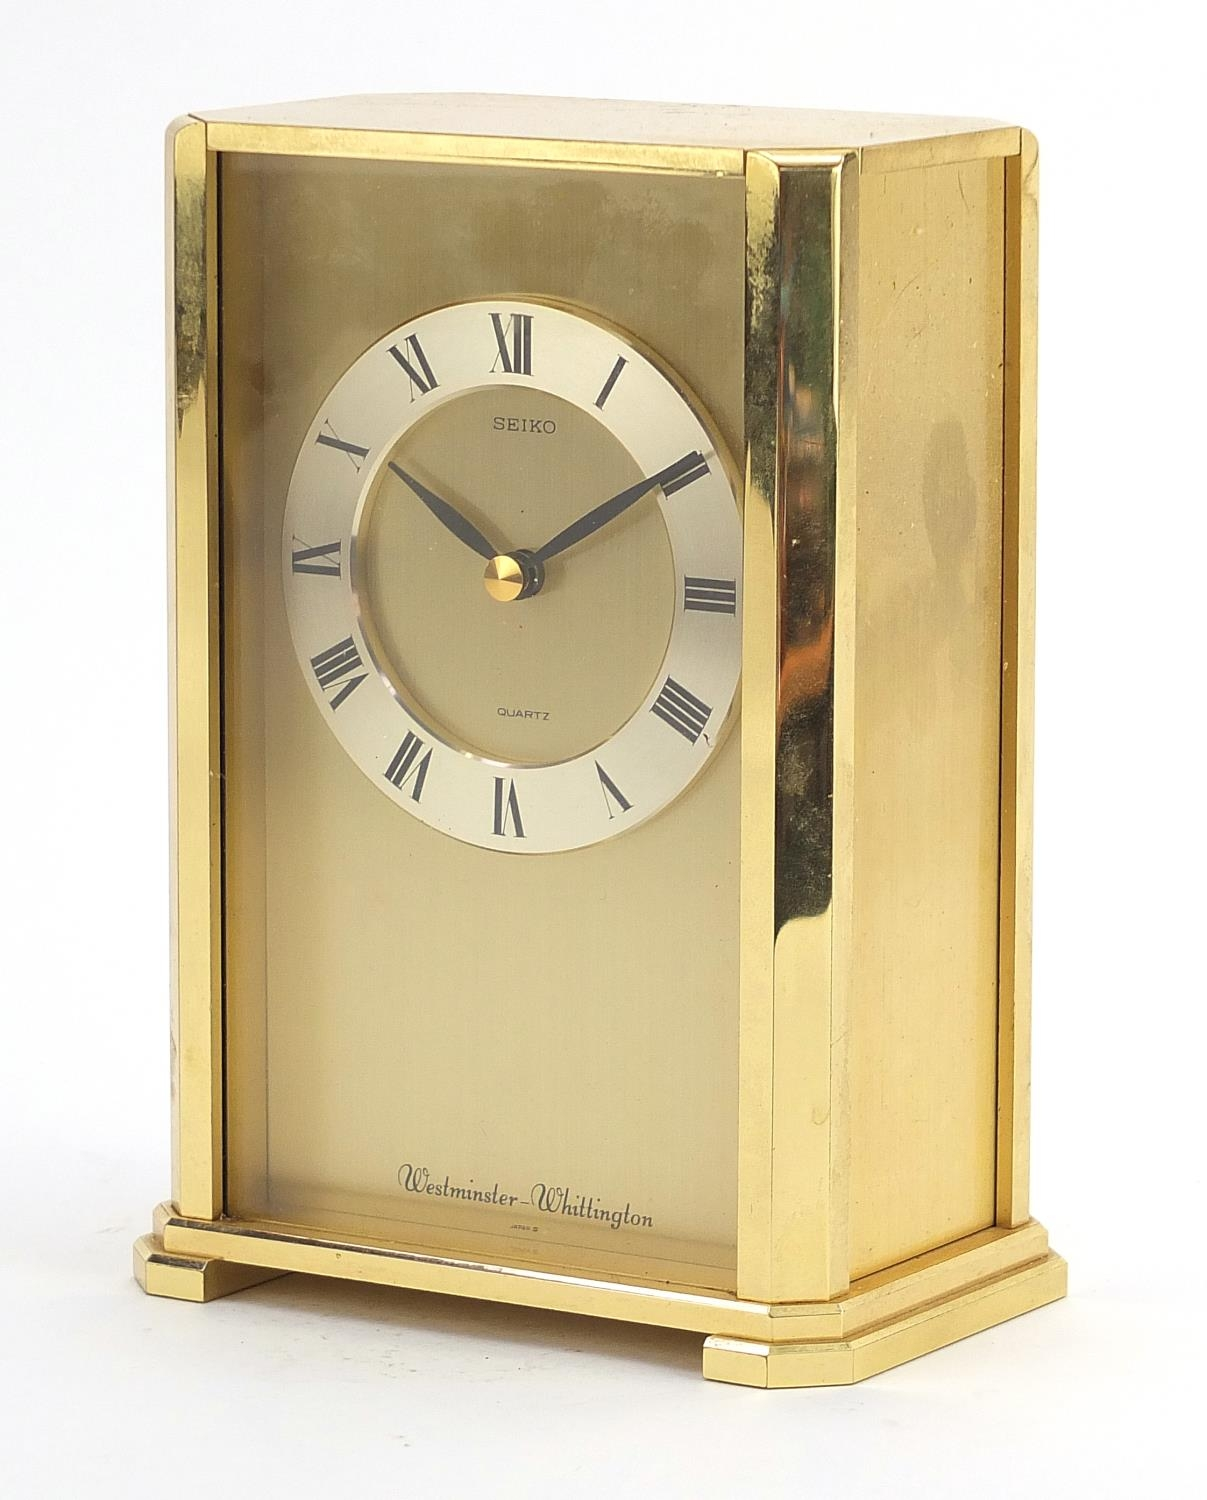 Seiko Westminster-Whittington mantle clock with Roman numerals, 20cm high : For Further Condition